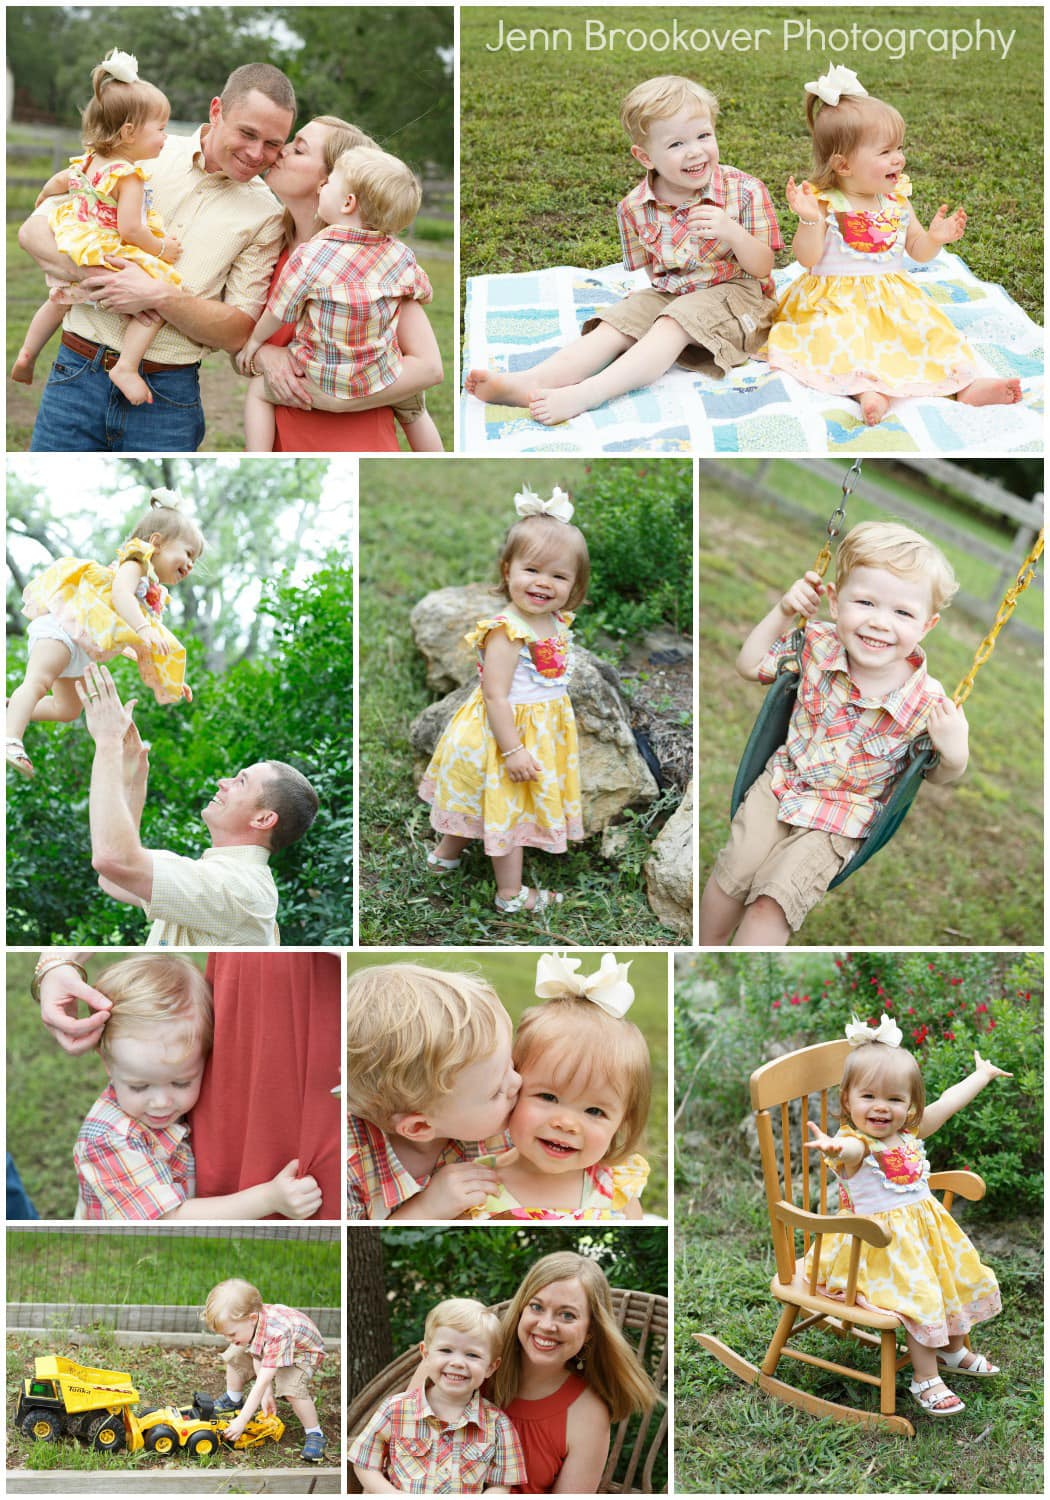 Family portraits in your backyard are fun for the kids and less stressful for you!